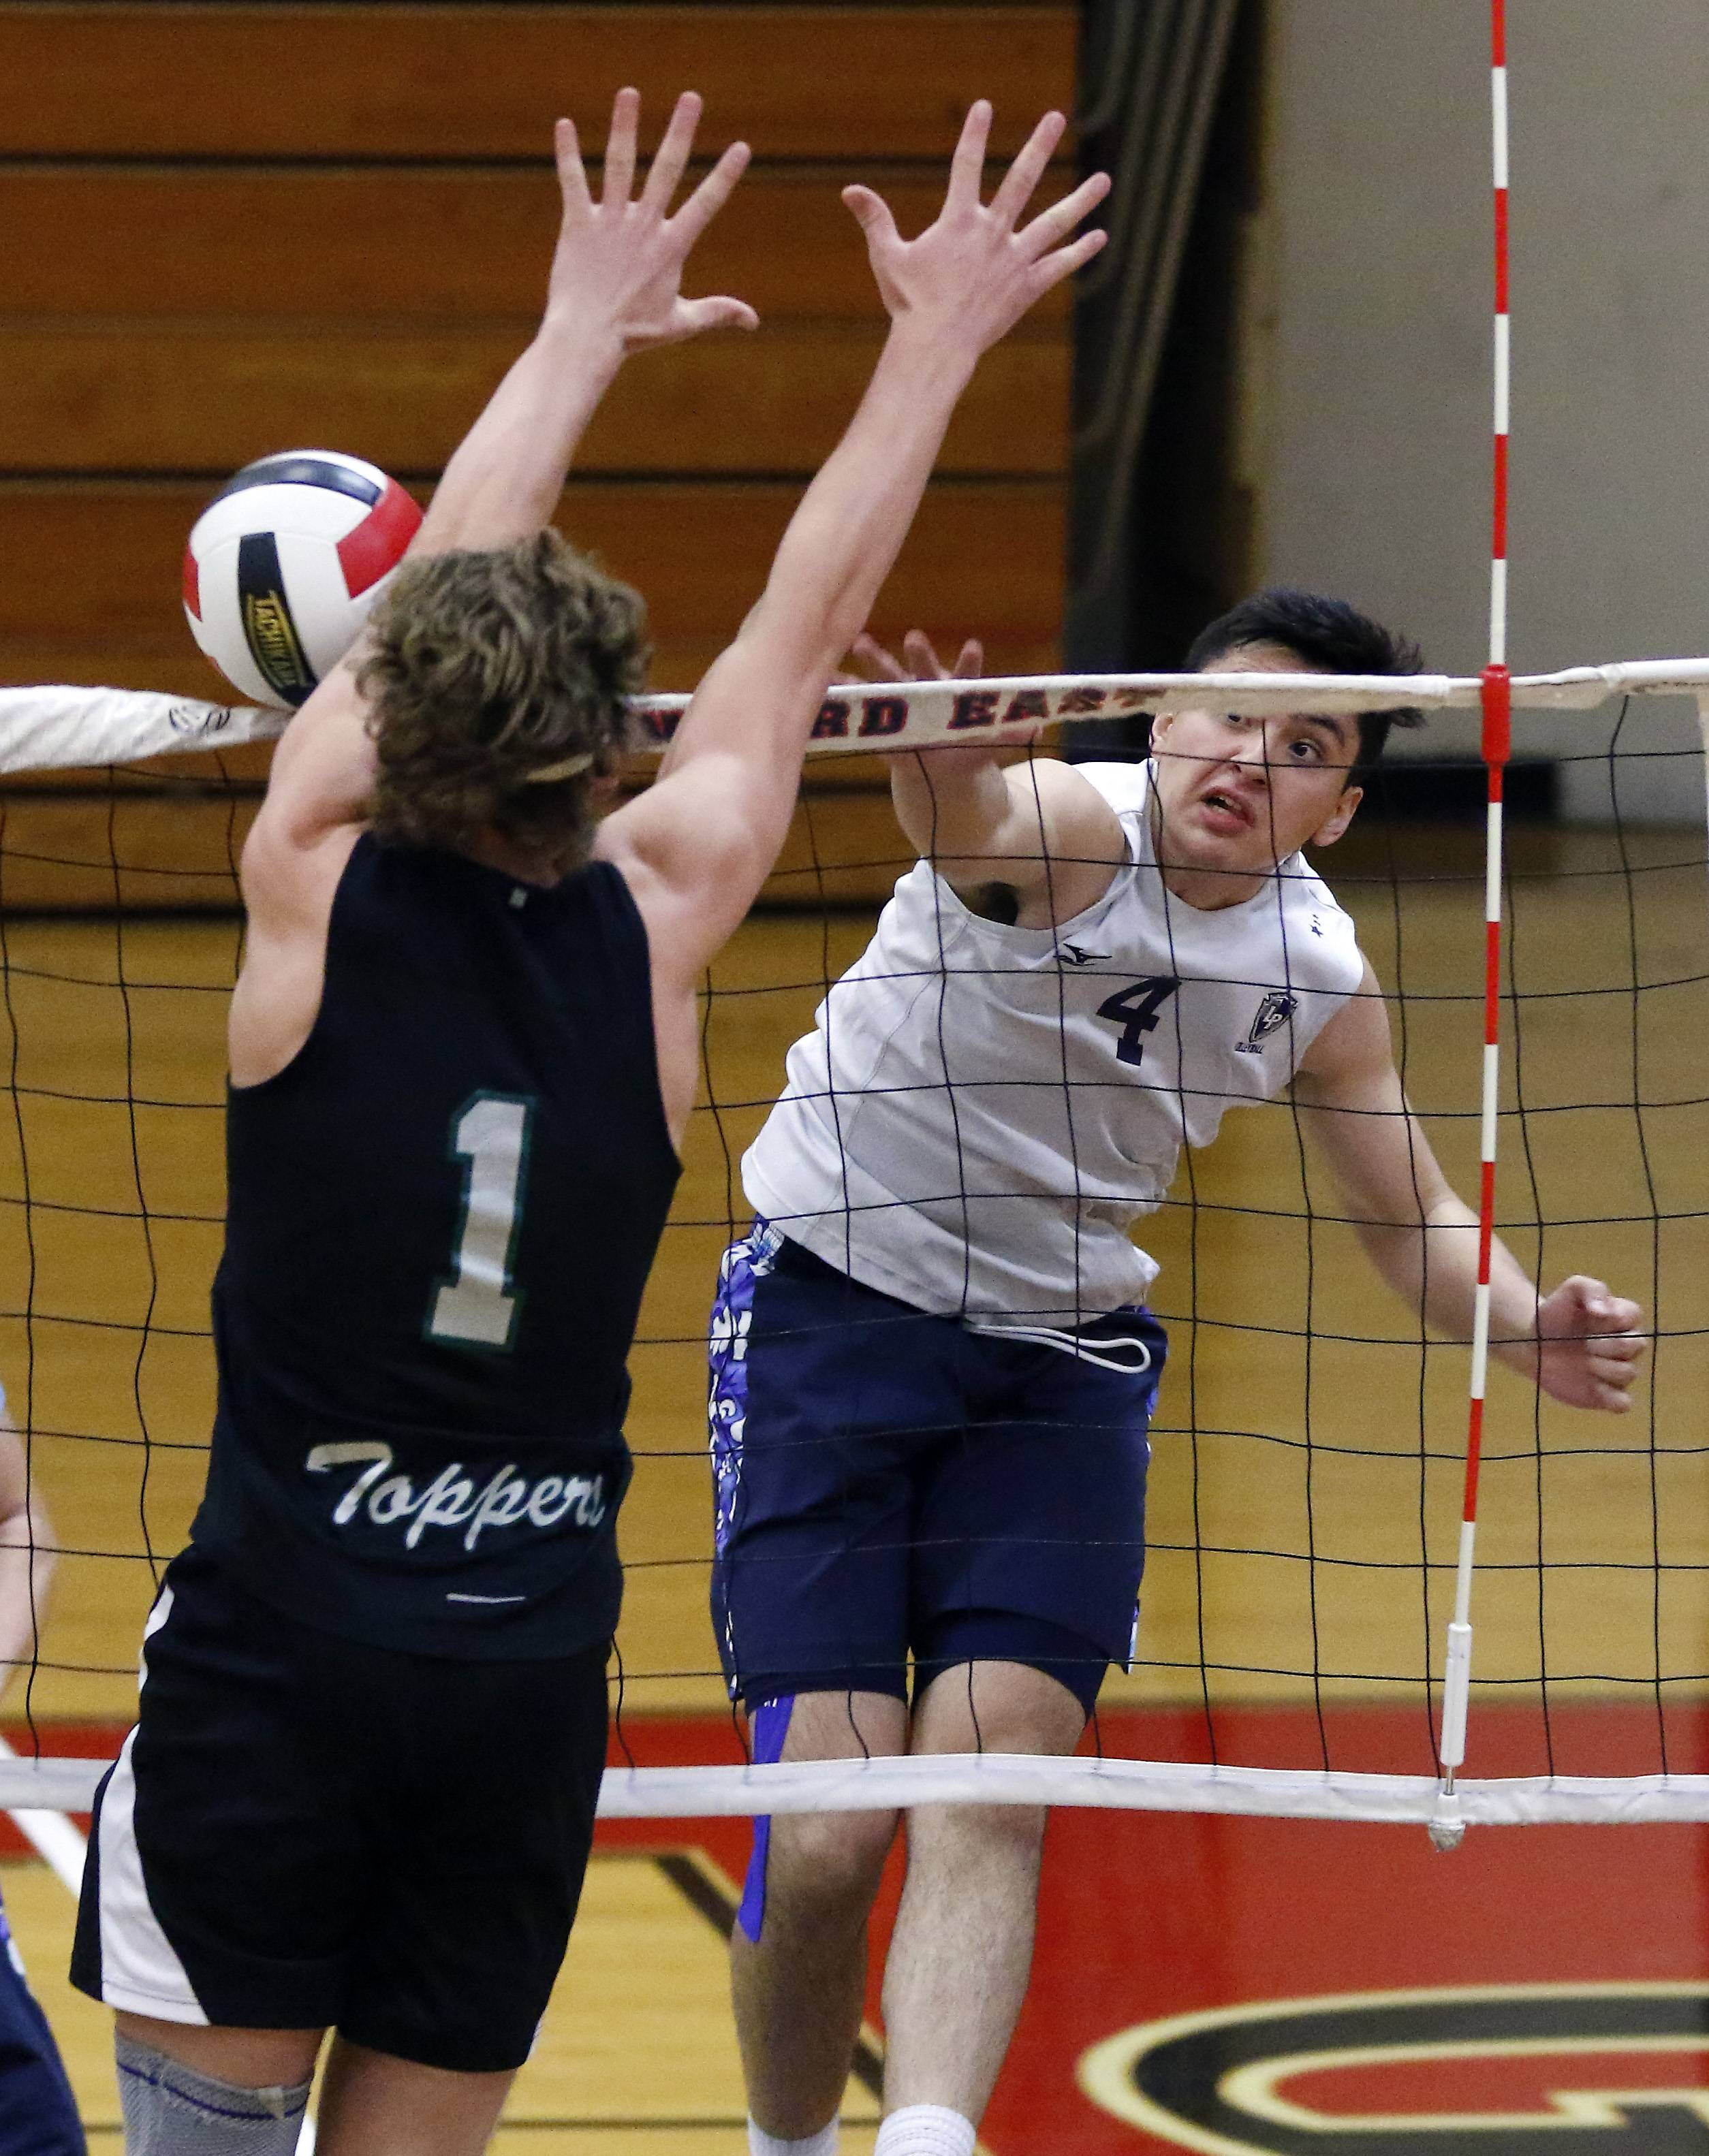 Lake Park's Jordan Haigh hits a shot against Glenbard West's Ben Harrington during the Springfest boys volleyball tournament Saturday at Glenbard East High School in Lombard.